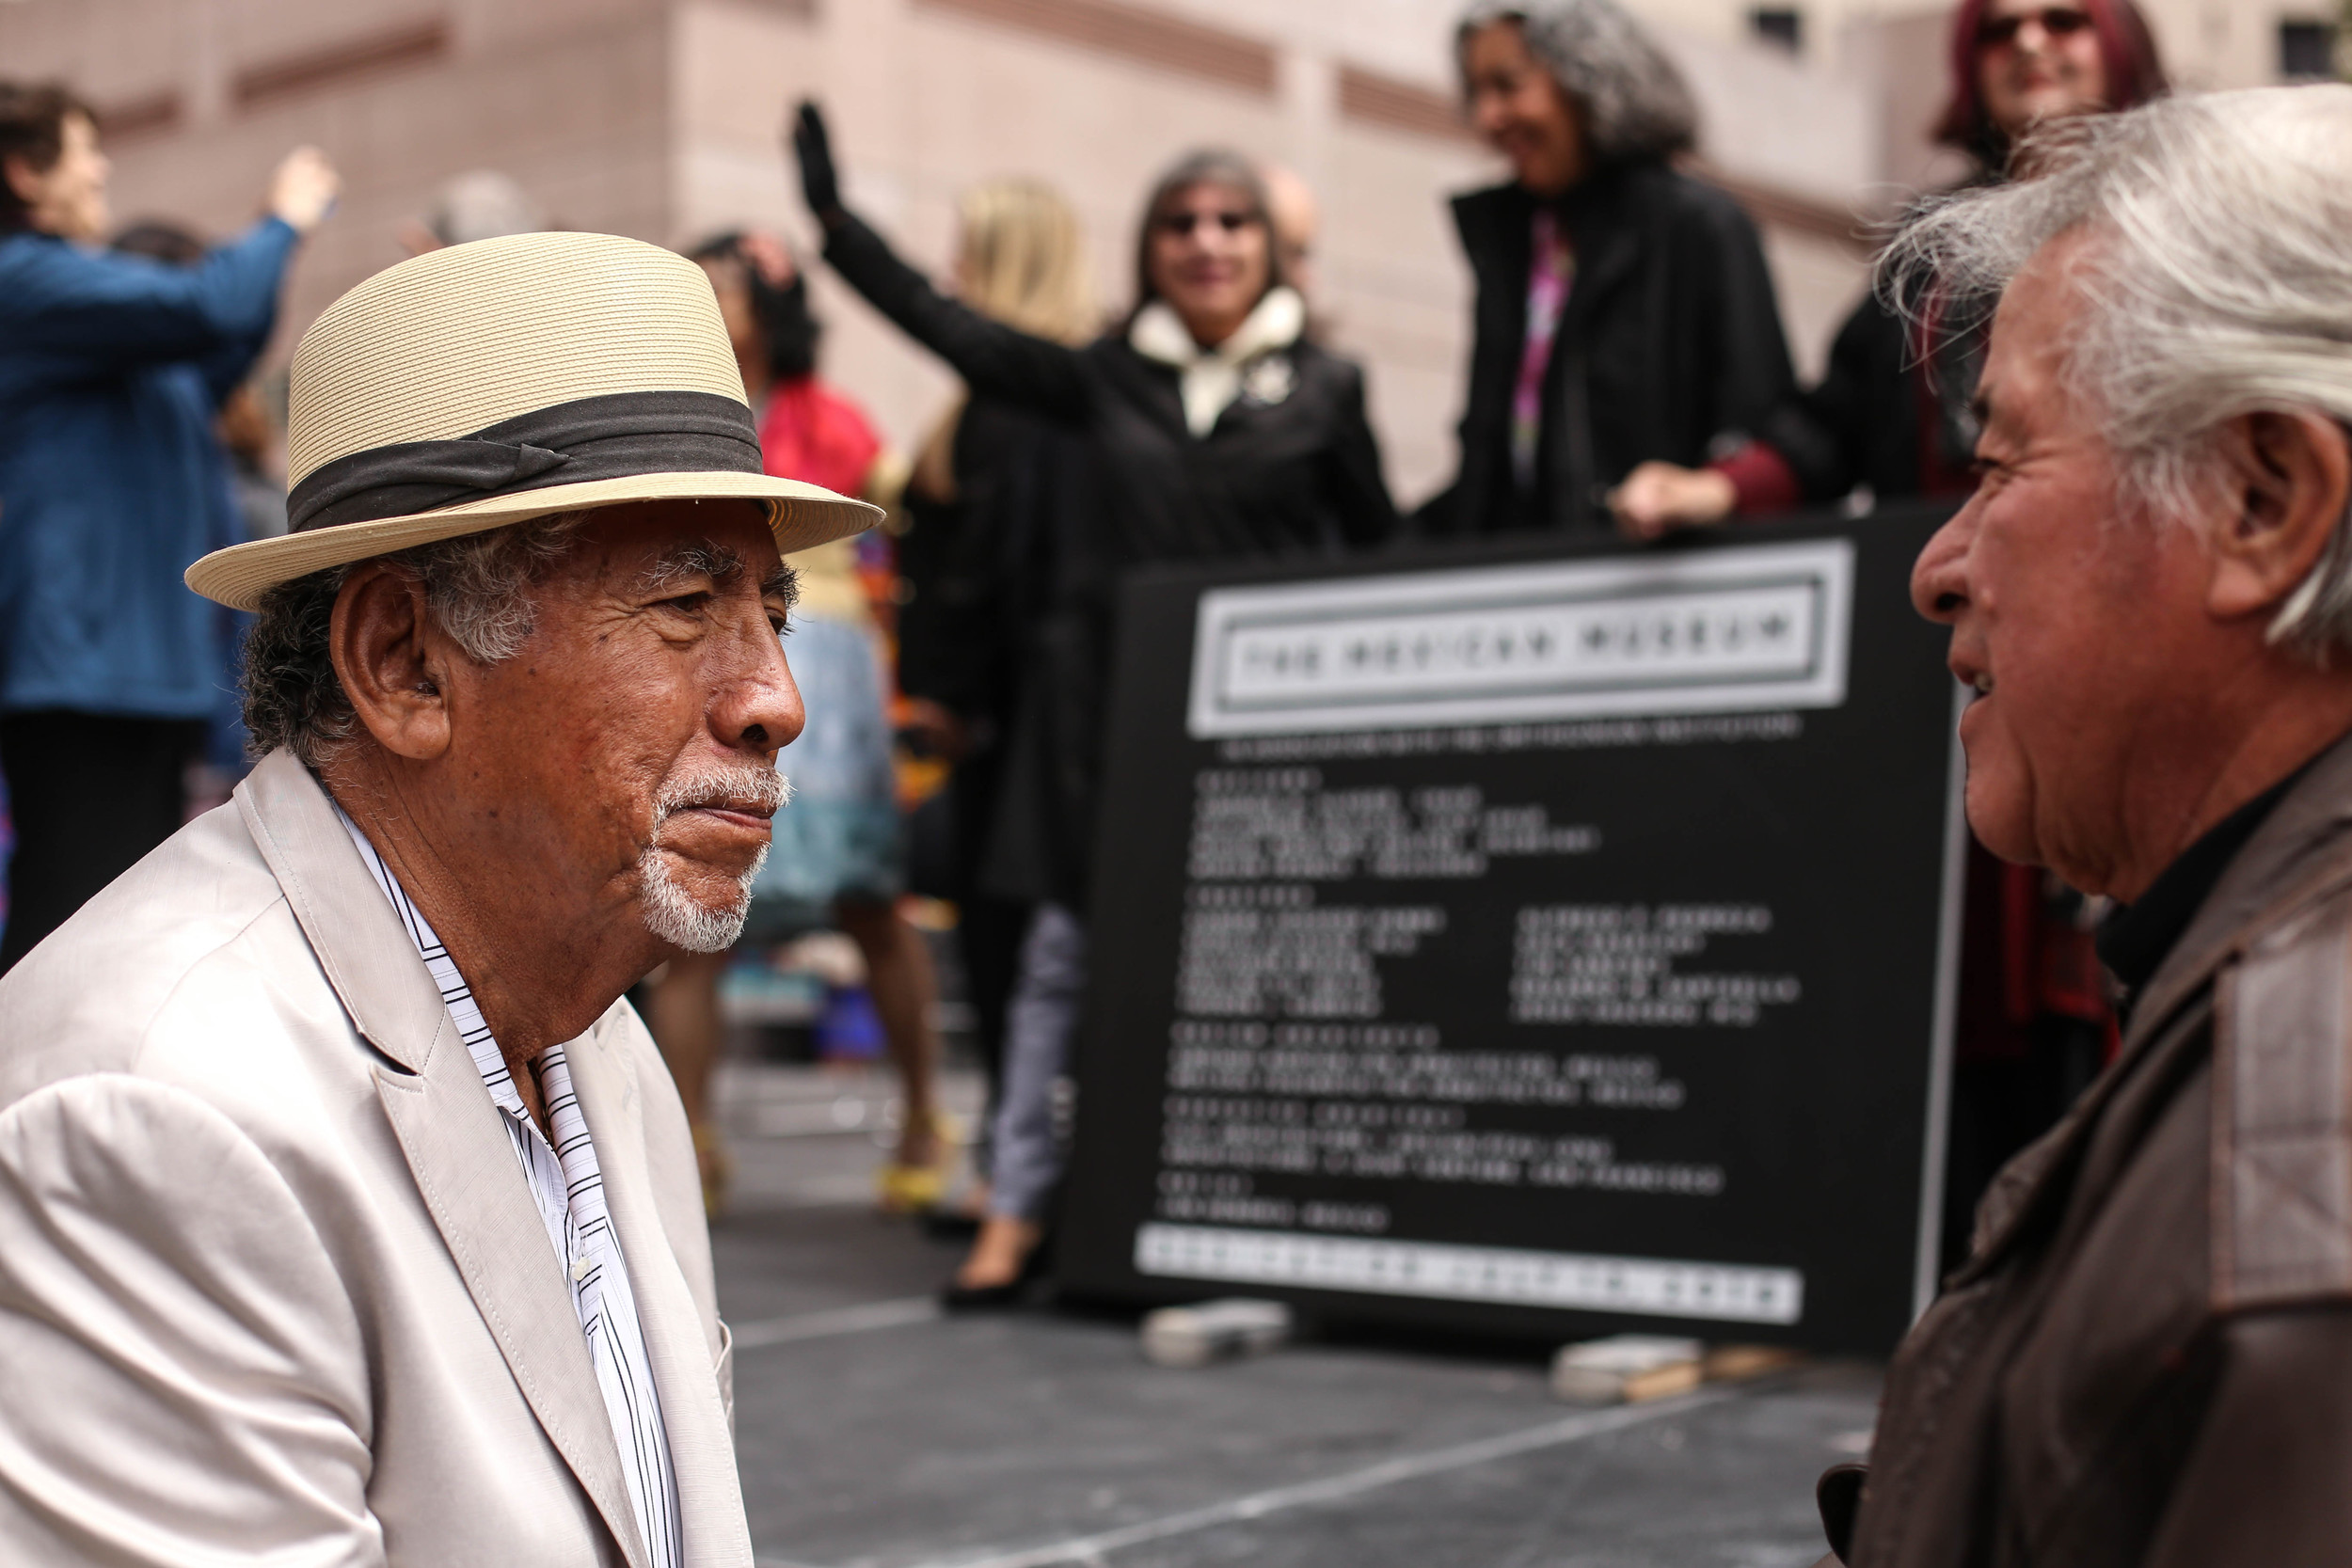 Alcario Castellano (San Jose) and Gil Hernandez (San Jose) at the dedication ceremony for The Mexican Museum in San Francisco, California. Tuesday, July 19, 2016. Jessica Webb